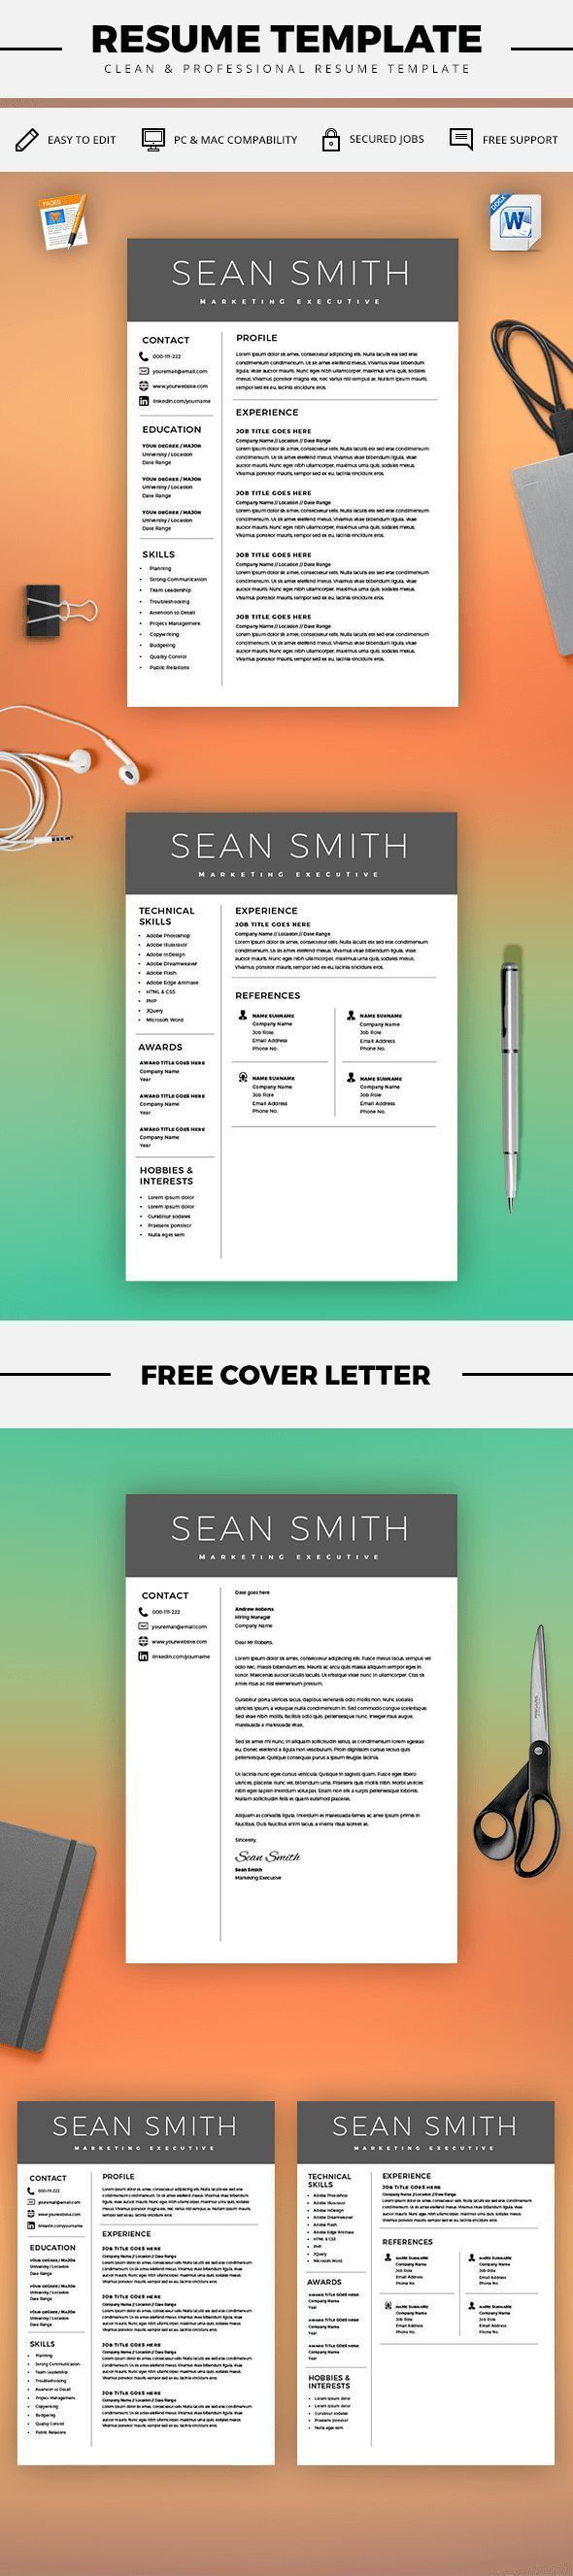 Curriculum Vitae Template - Professional Resume Template + Cover ...